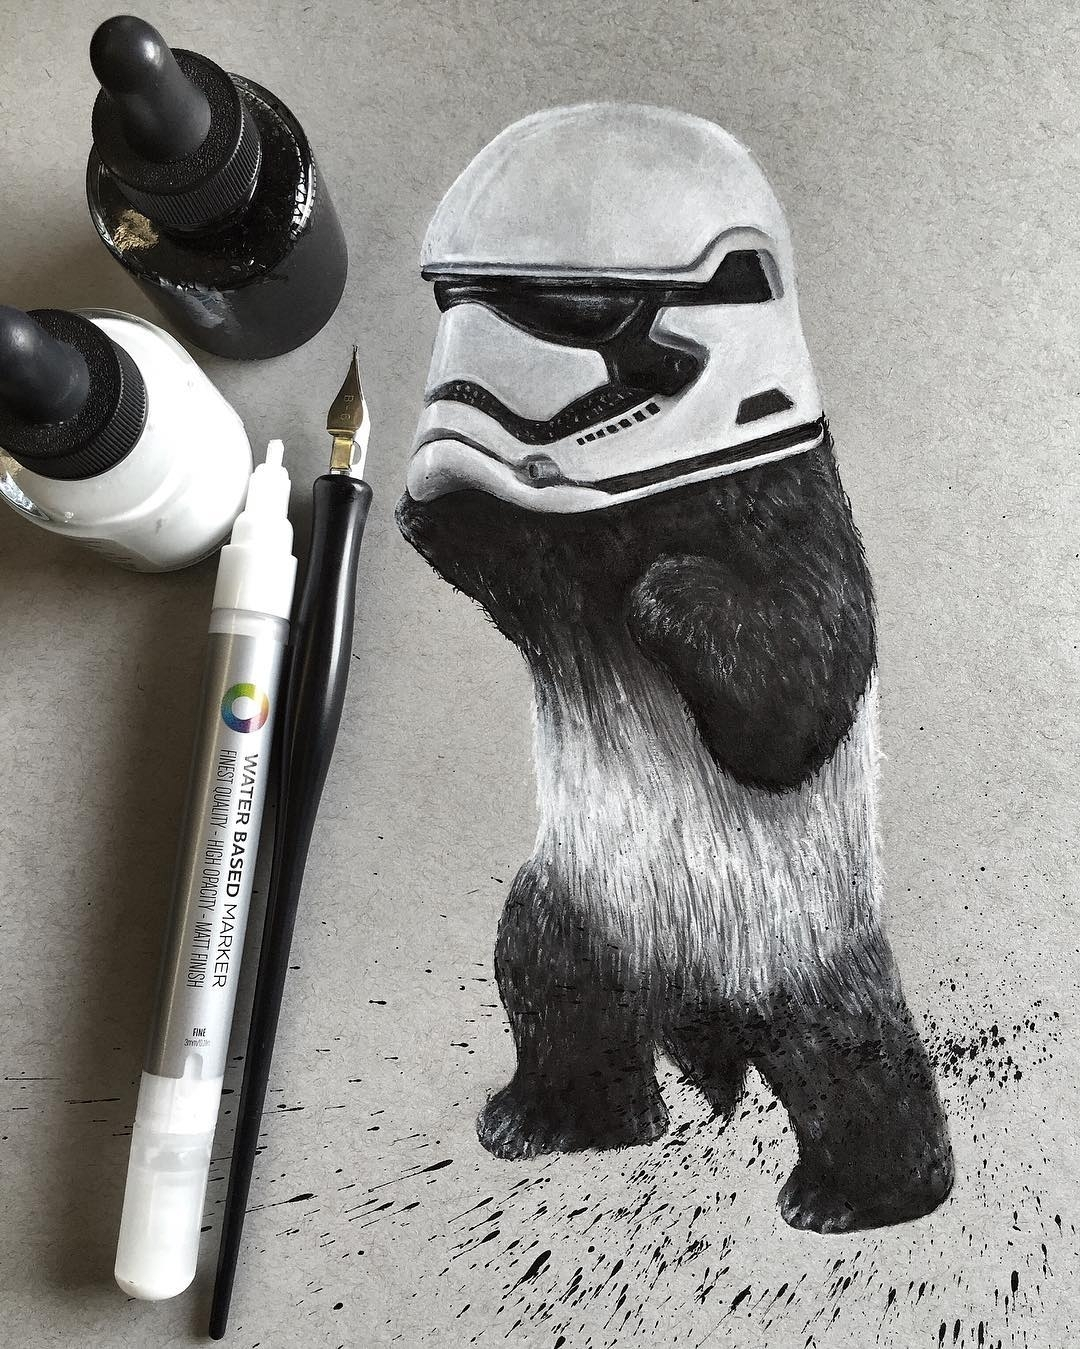 12-Panda-Dark-Side-Jonathan-Martinez-Art-of-the-Endangered-Paintings-and-Drawings-www-designstack-co